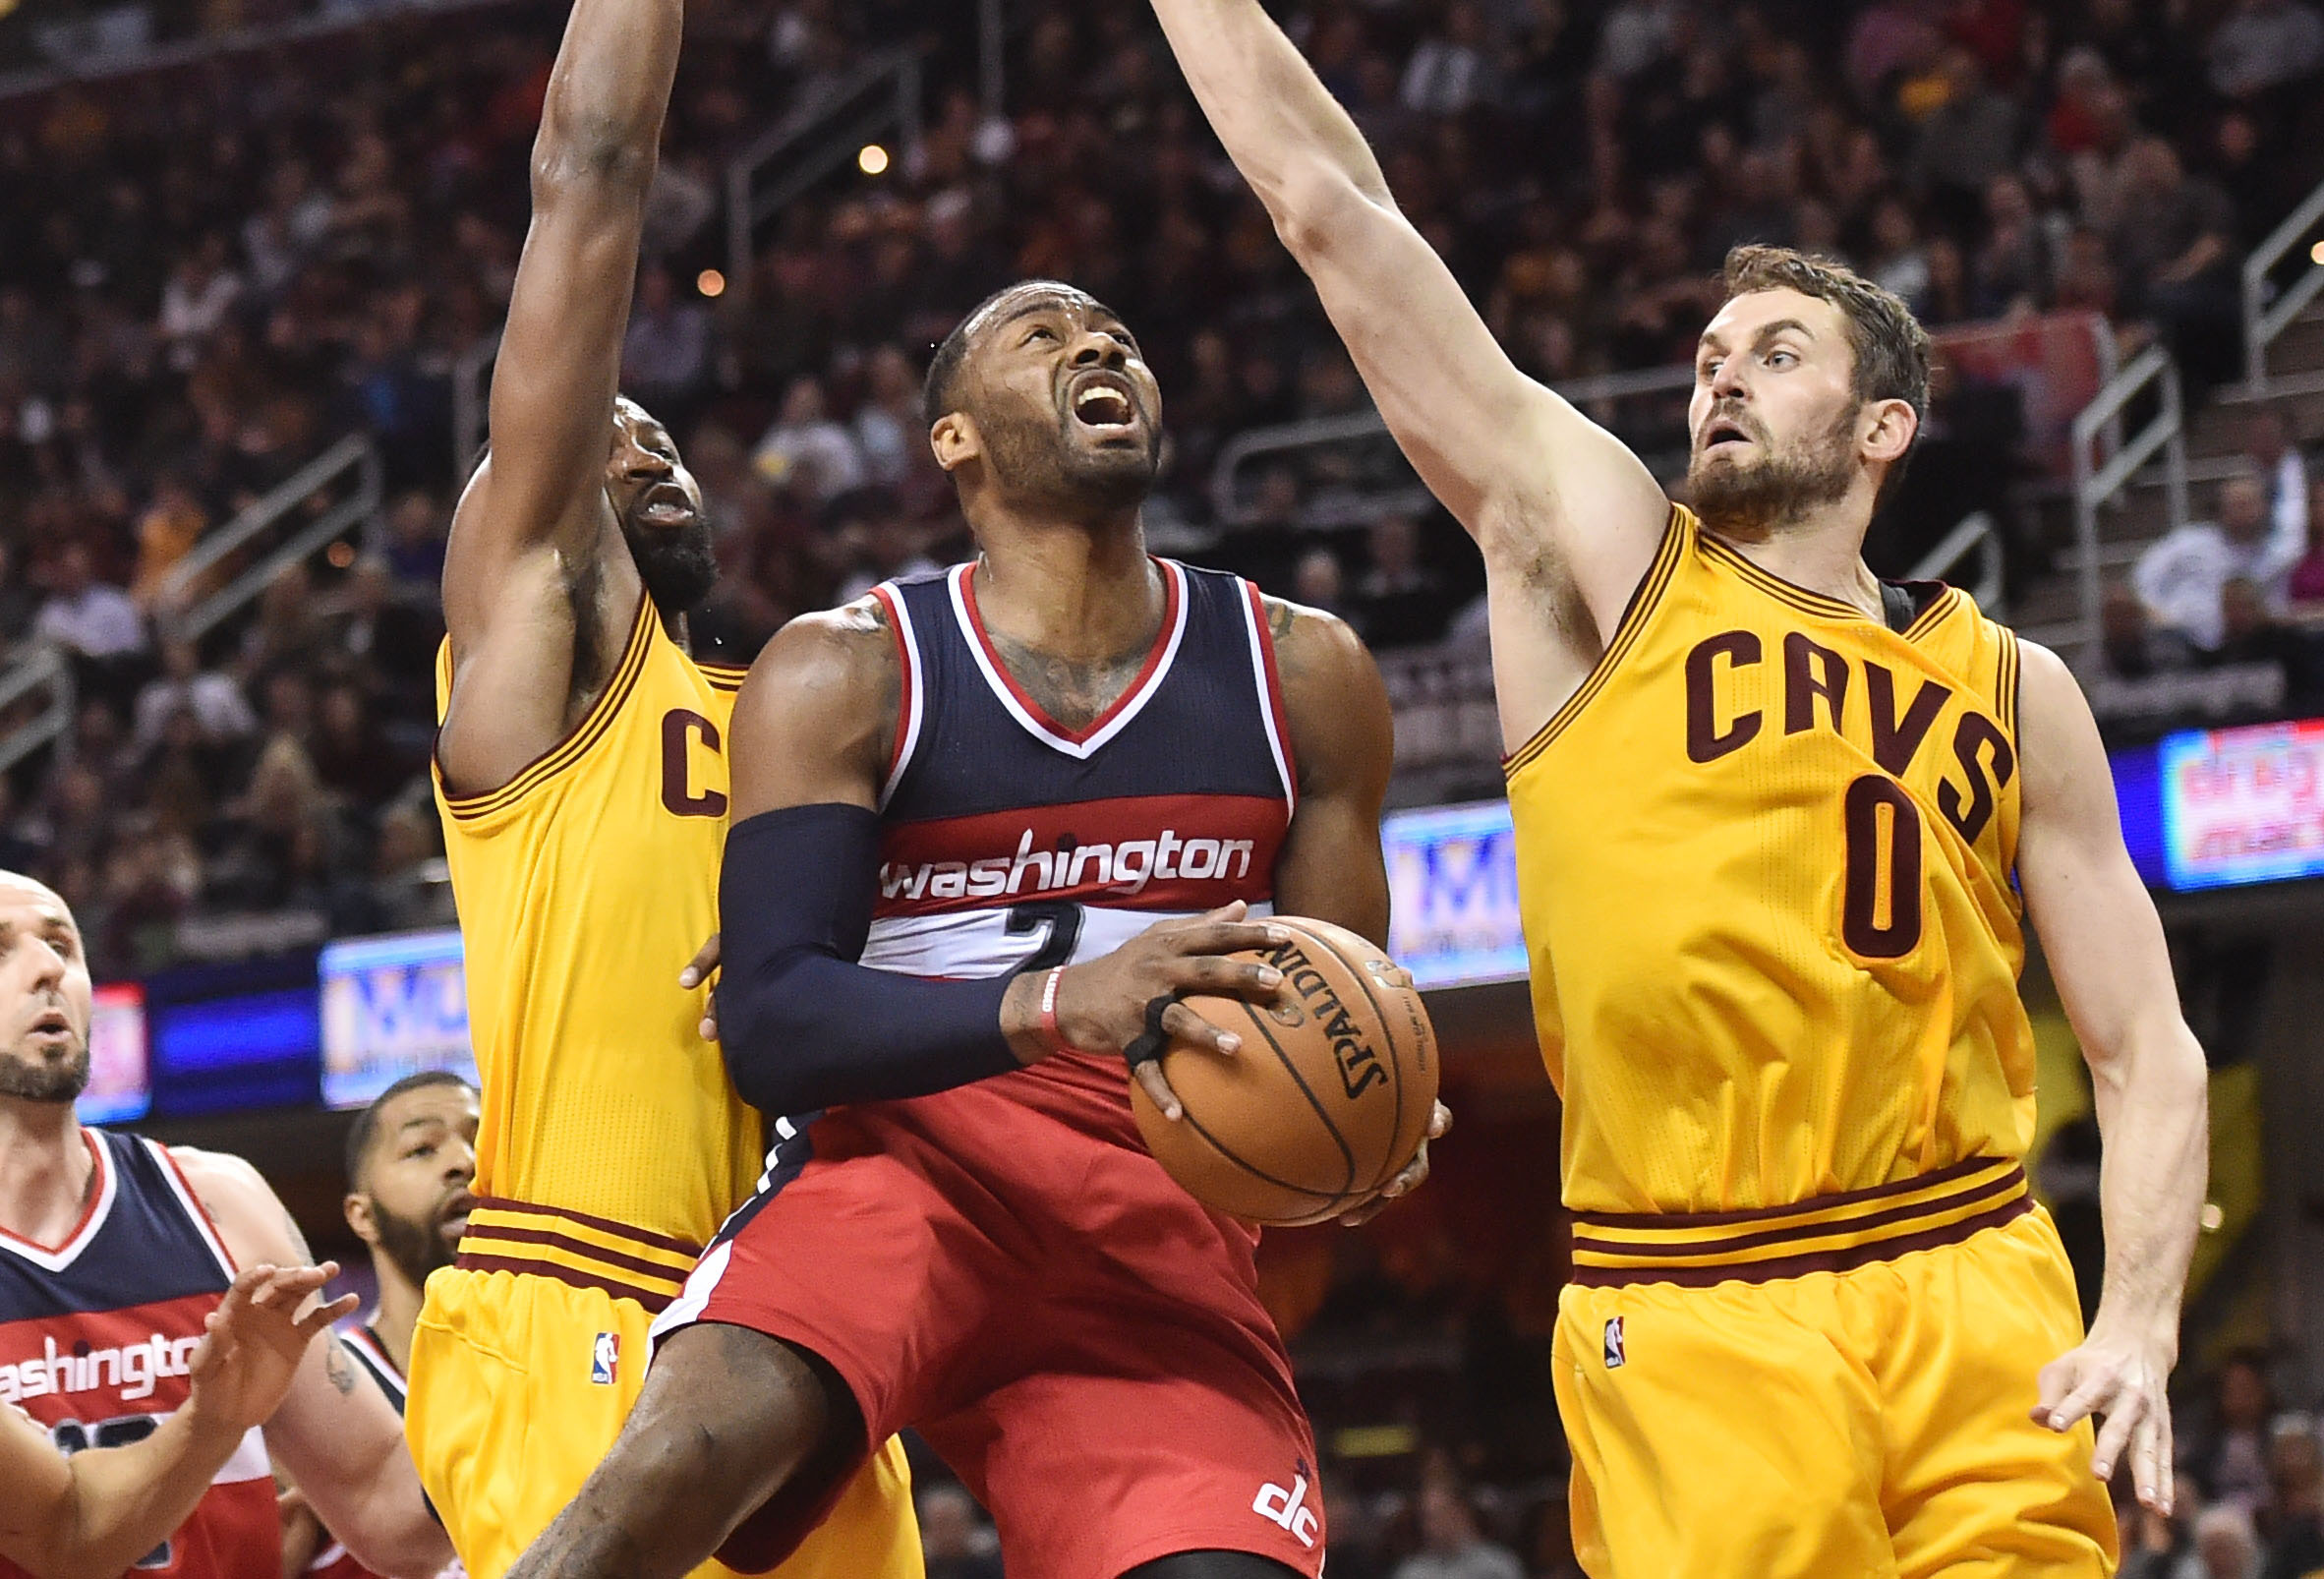 9970581-nba-washington-wizards-at-cleveland-cavaliers